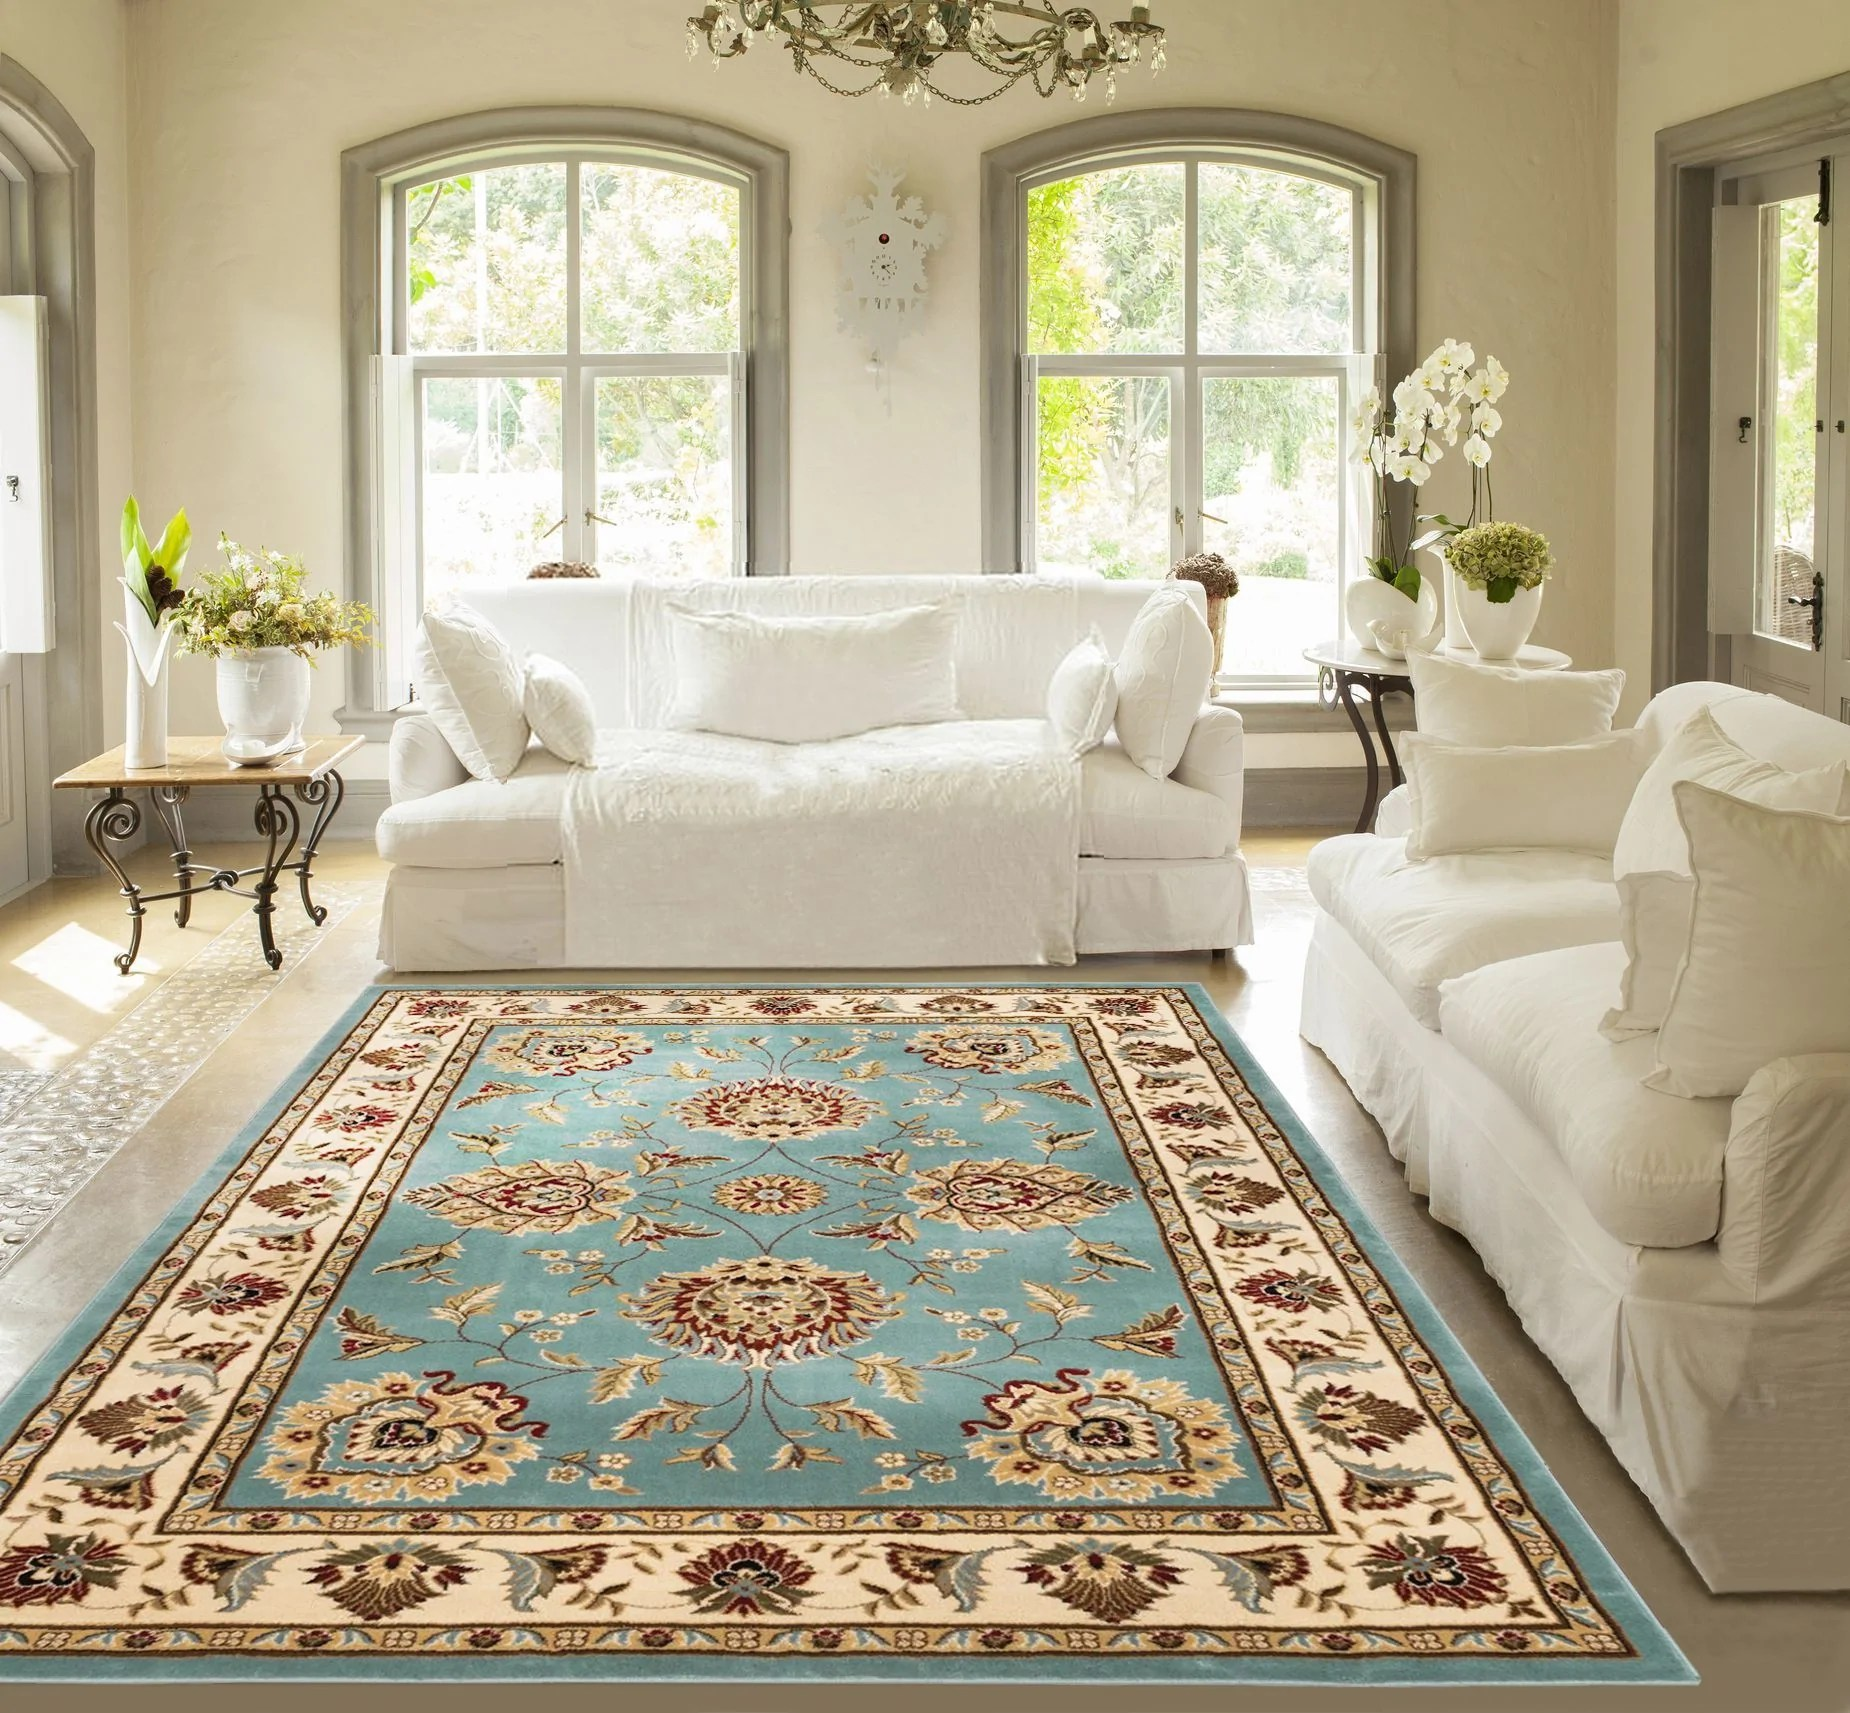 blue persian rug living room check curtains ideas sultan sarouk light floral oriental formal traditional area